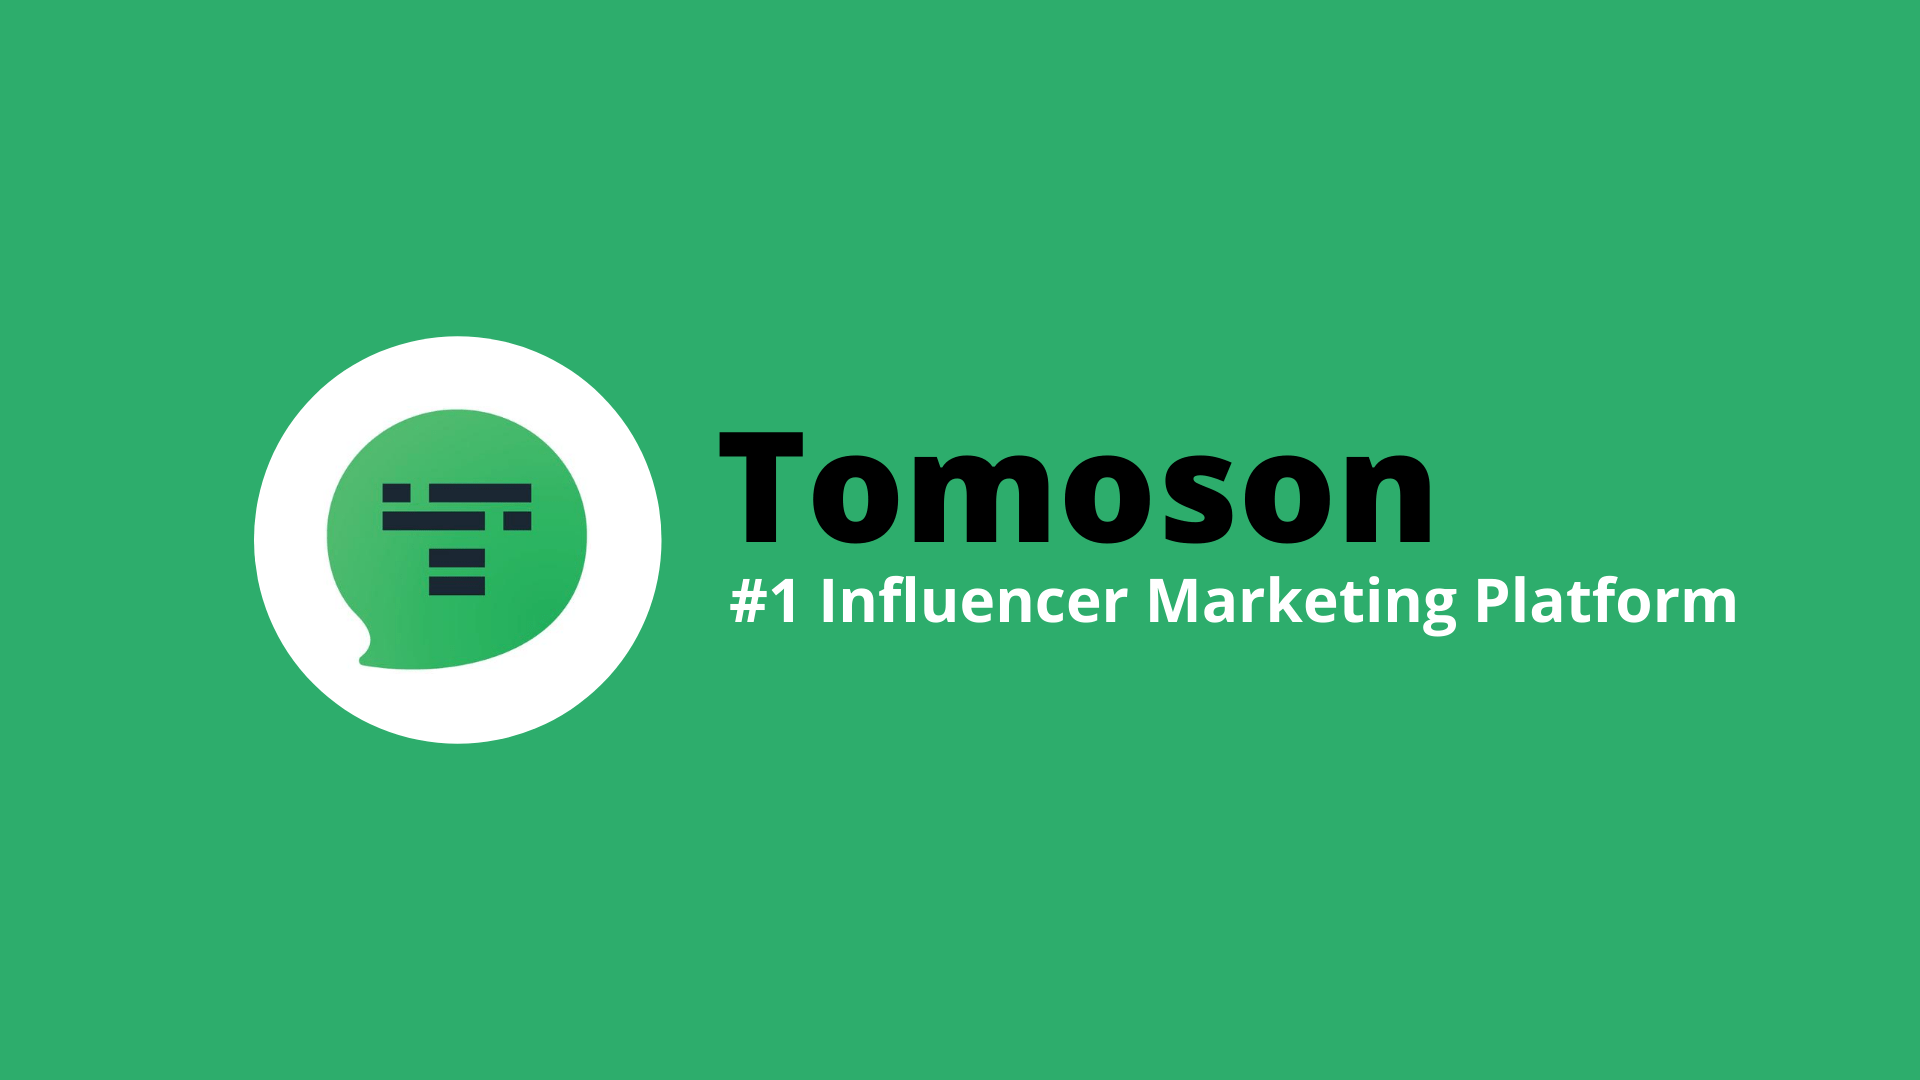 What is Tomoson? The #1 Influencer Marketing Platform